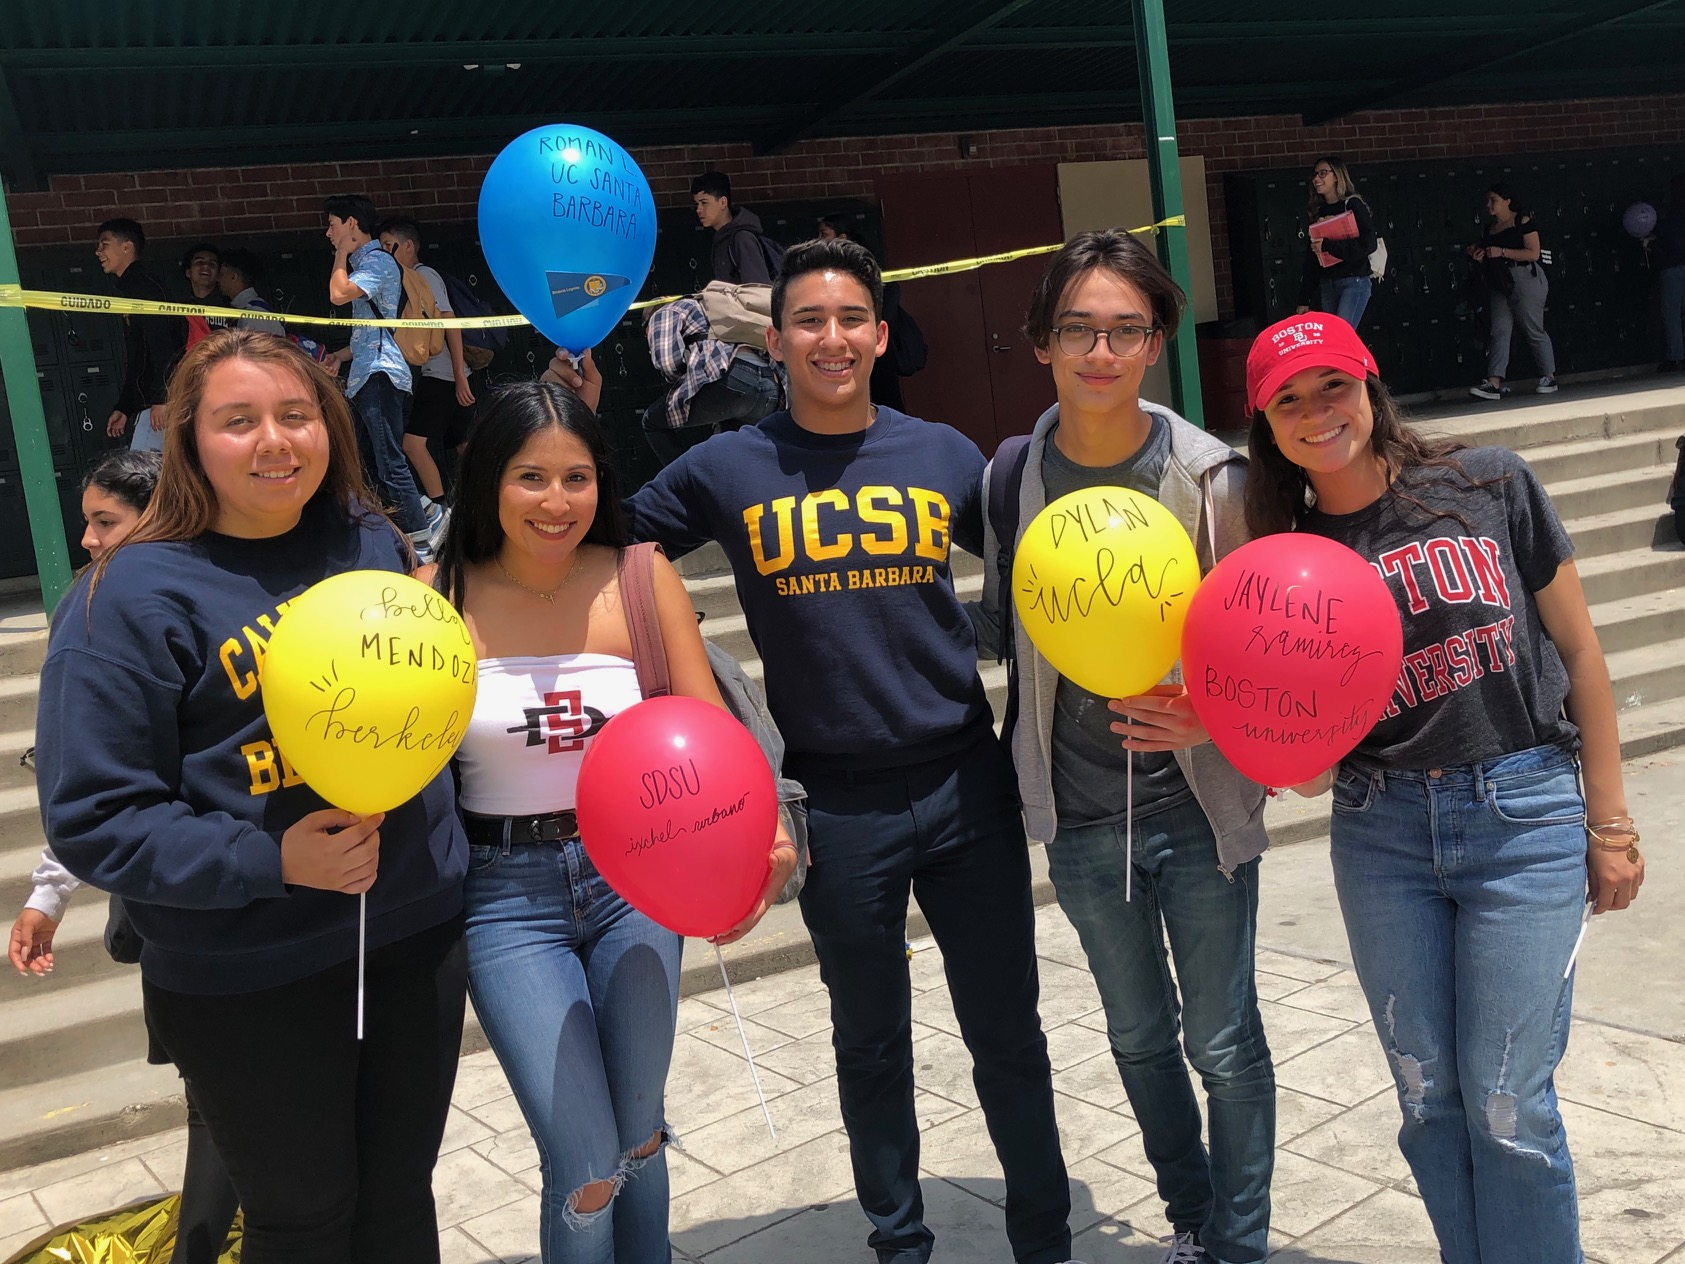 Whittier Union seniors celebrate going to college after they graduate during College Signing Day, which took place at each comprehensive high school during the first week of May.